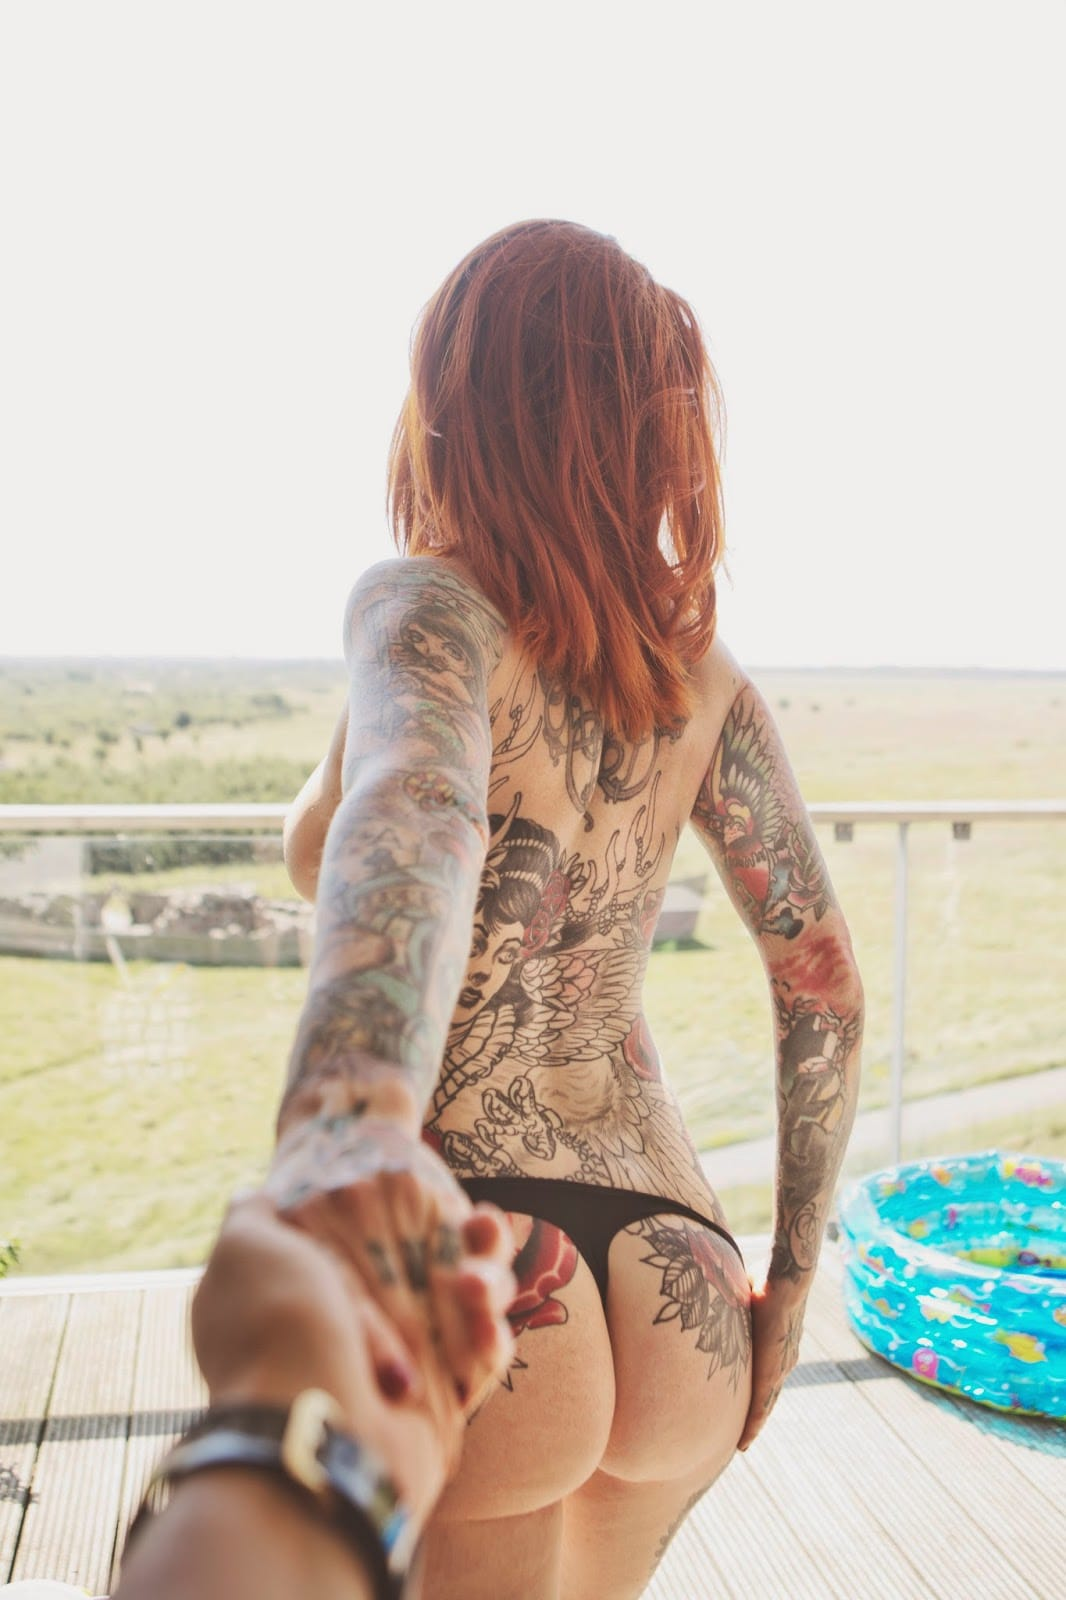 Another tattooed #followmeto couple photography for your inspiration... Show us yours!  Credit: Kenneth Nguyen.